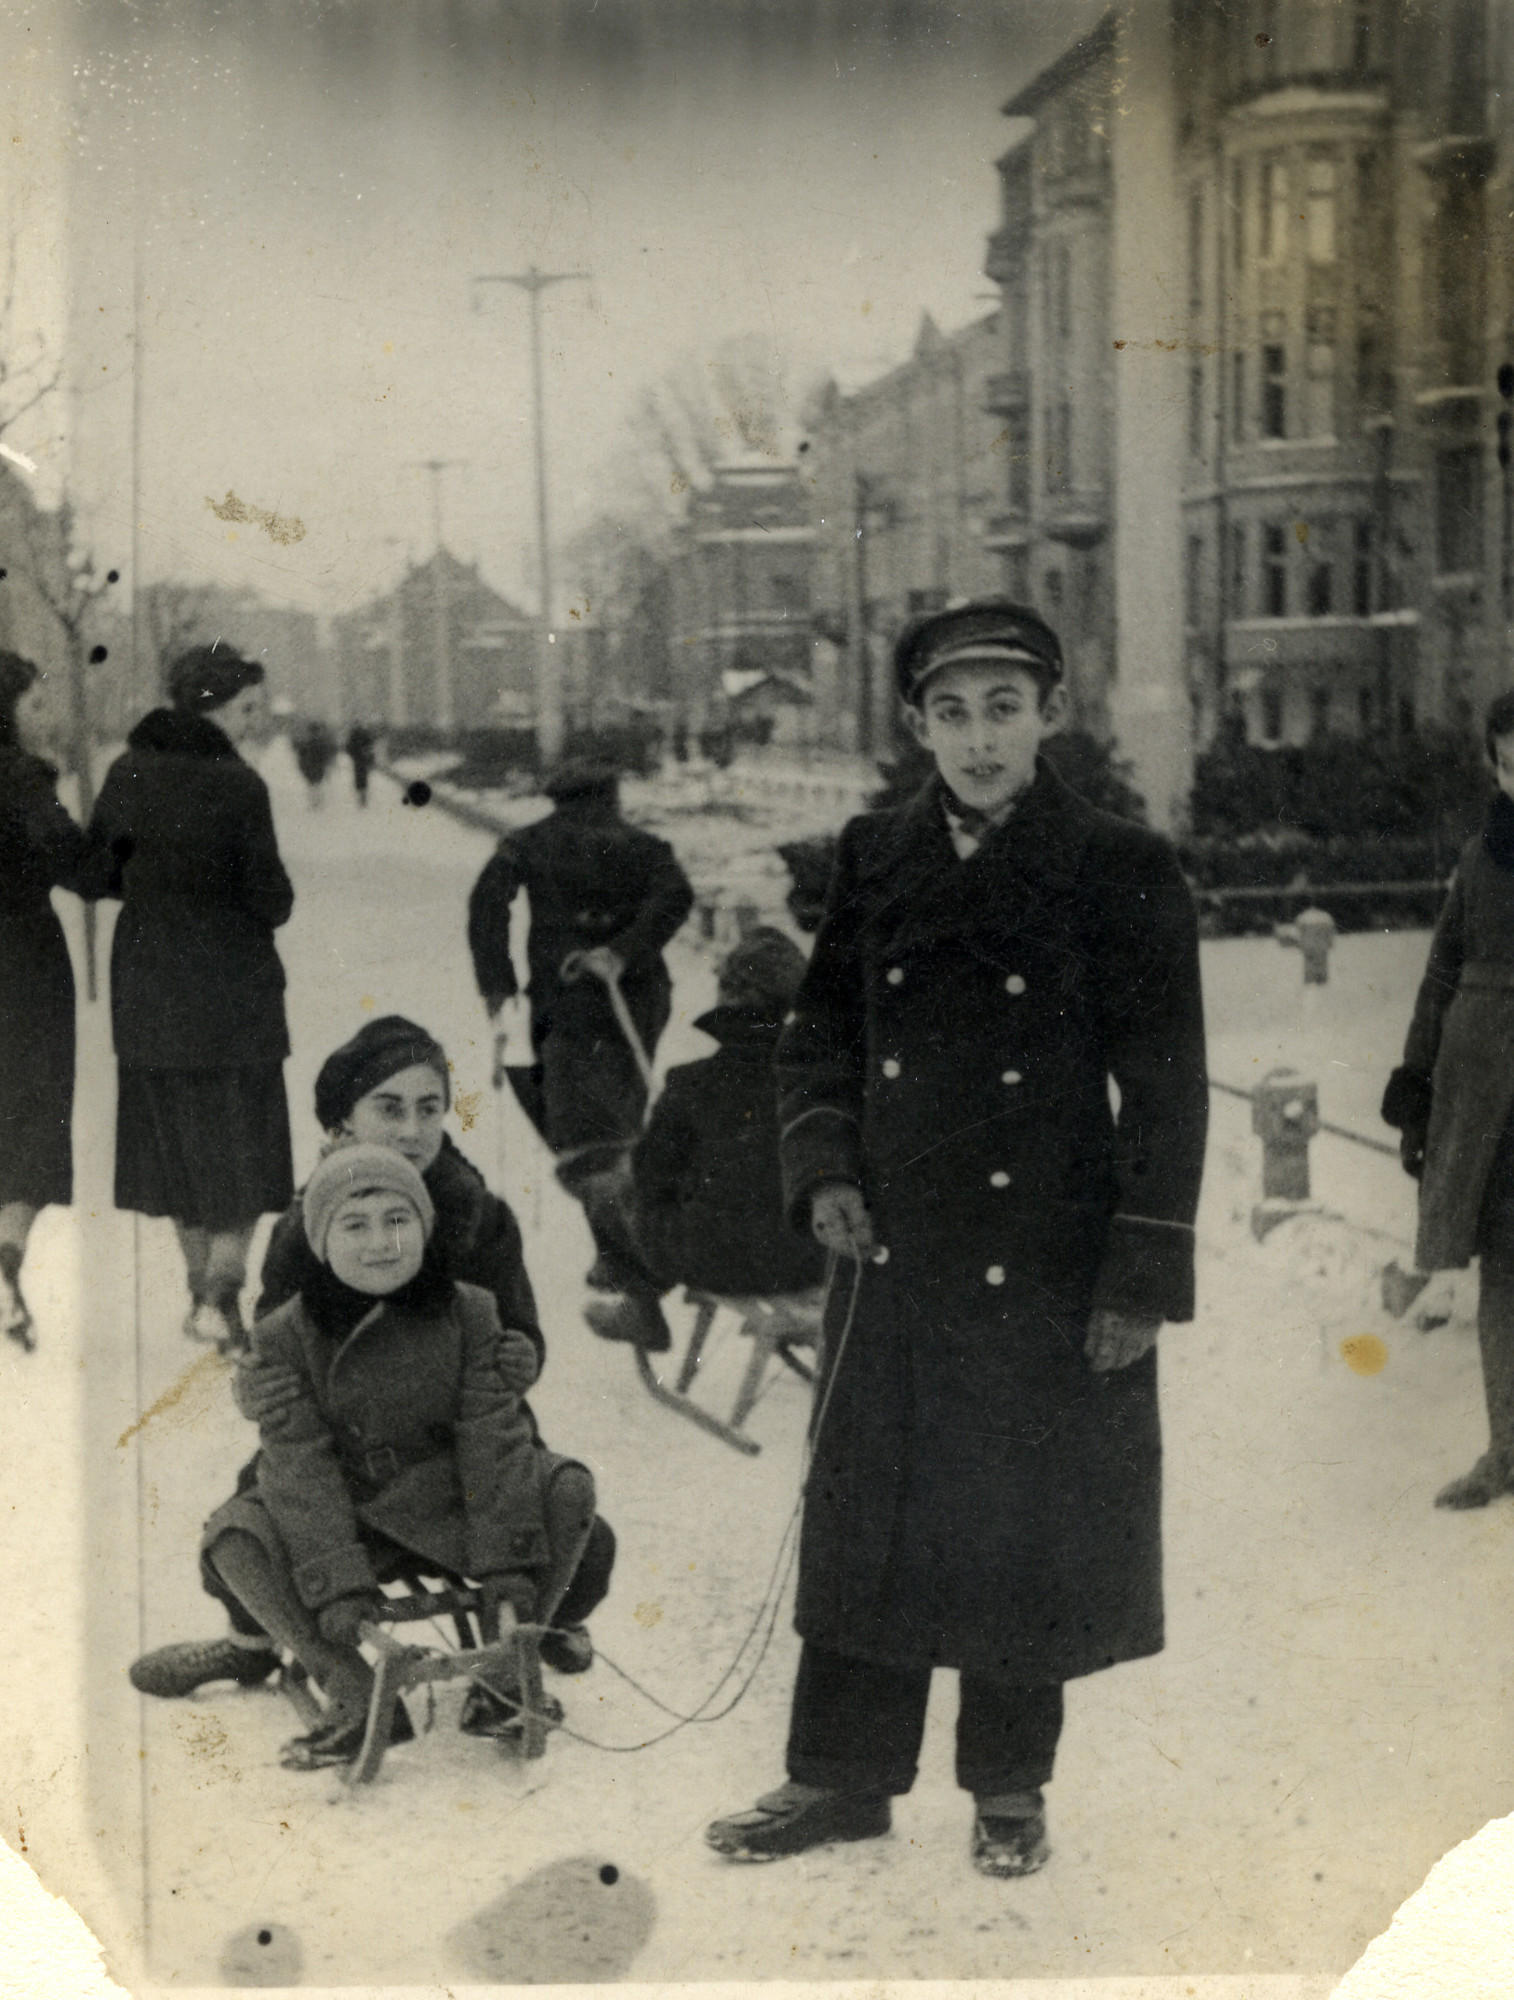 Jewish children go sledding in the streets of Kalisz, Poland.  Among those pictued are siblings Ester and Michael (seated on the sled) and Szamszon Gluba (standing, pulling the sled).